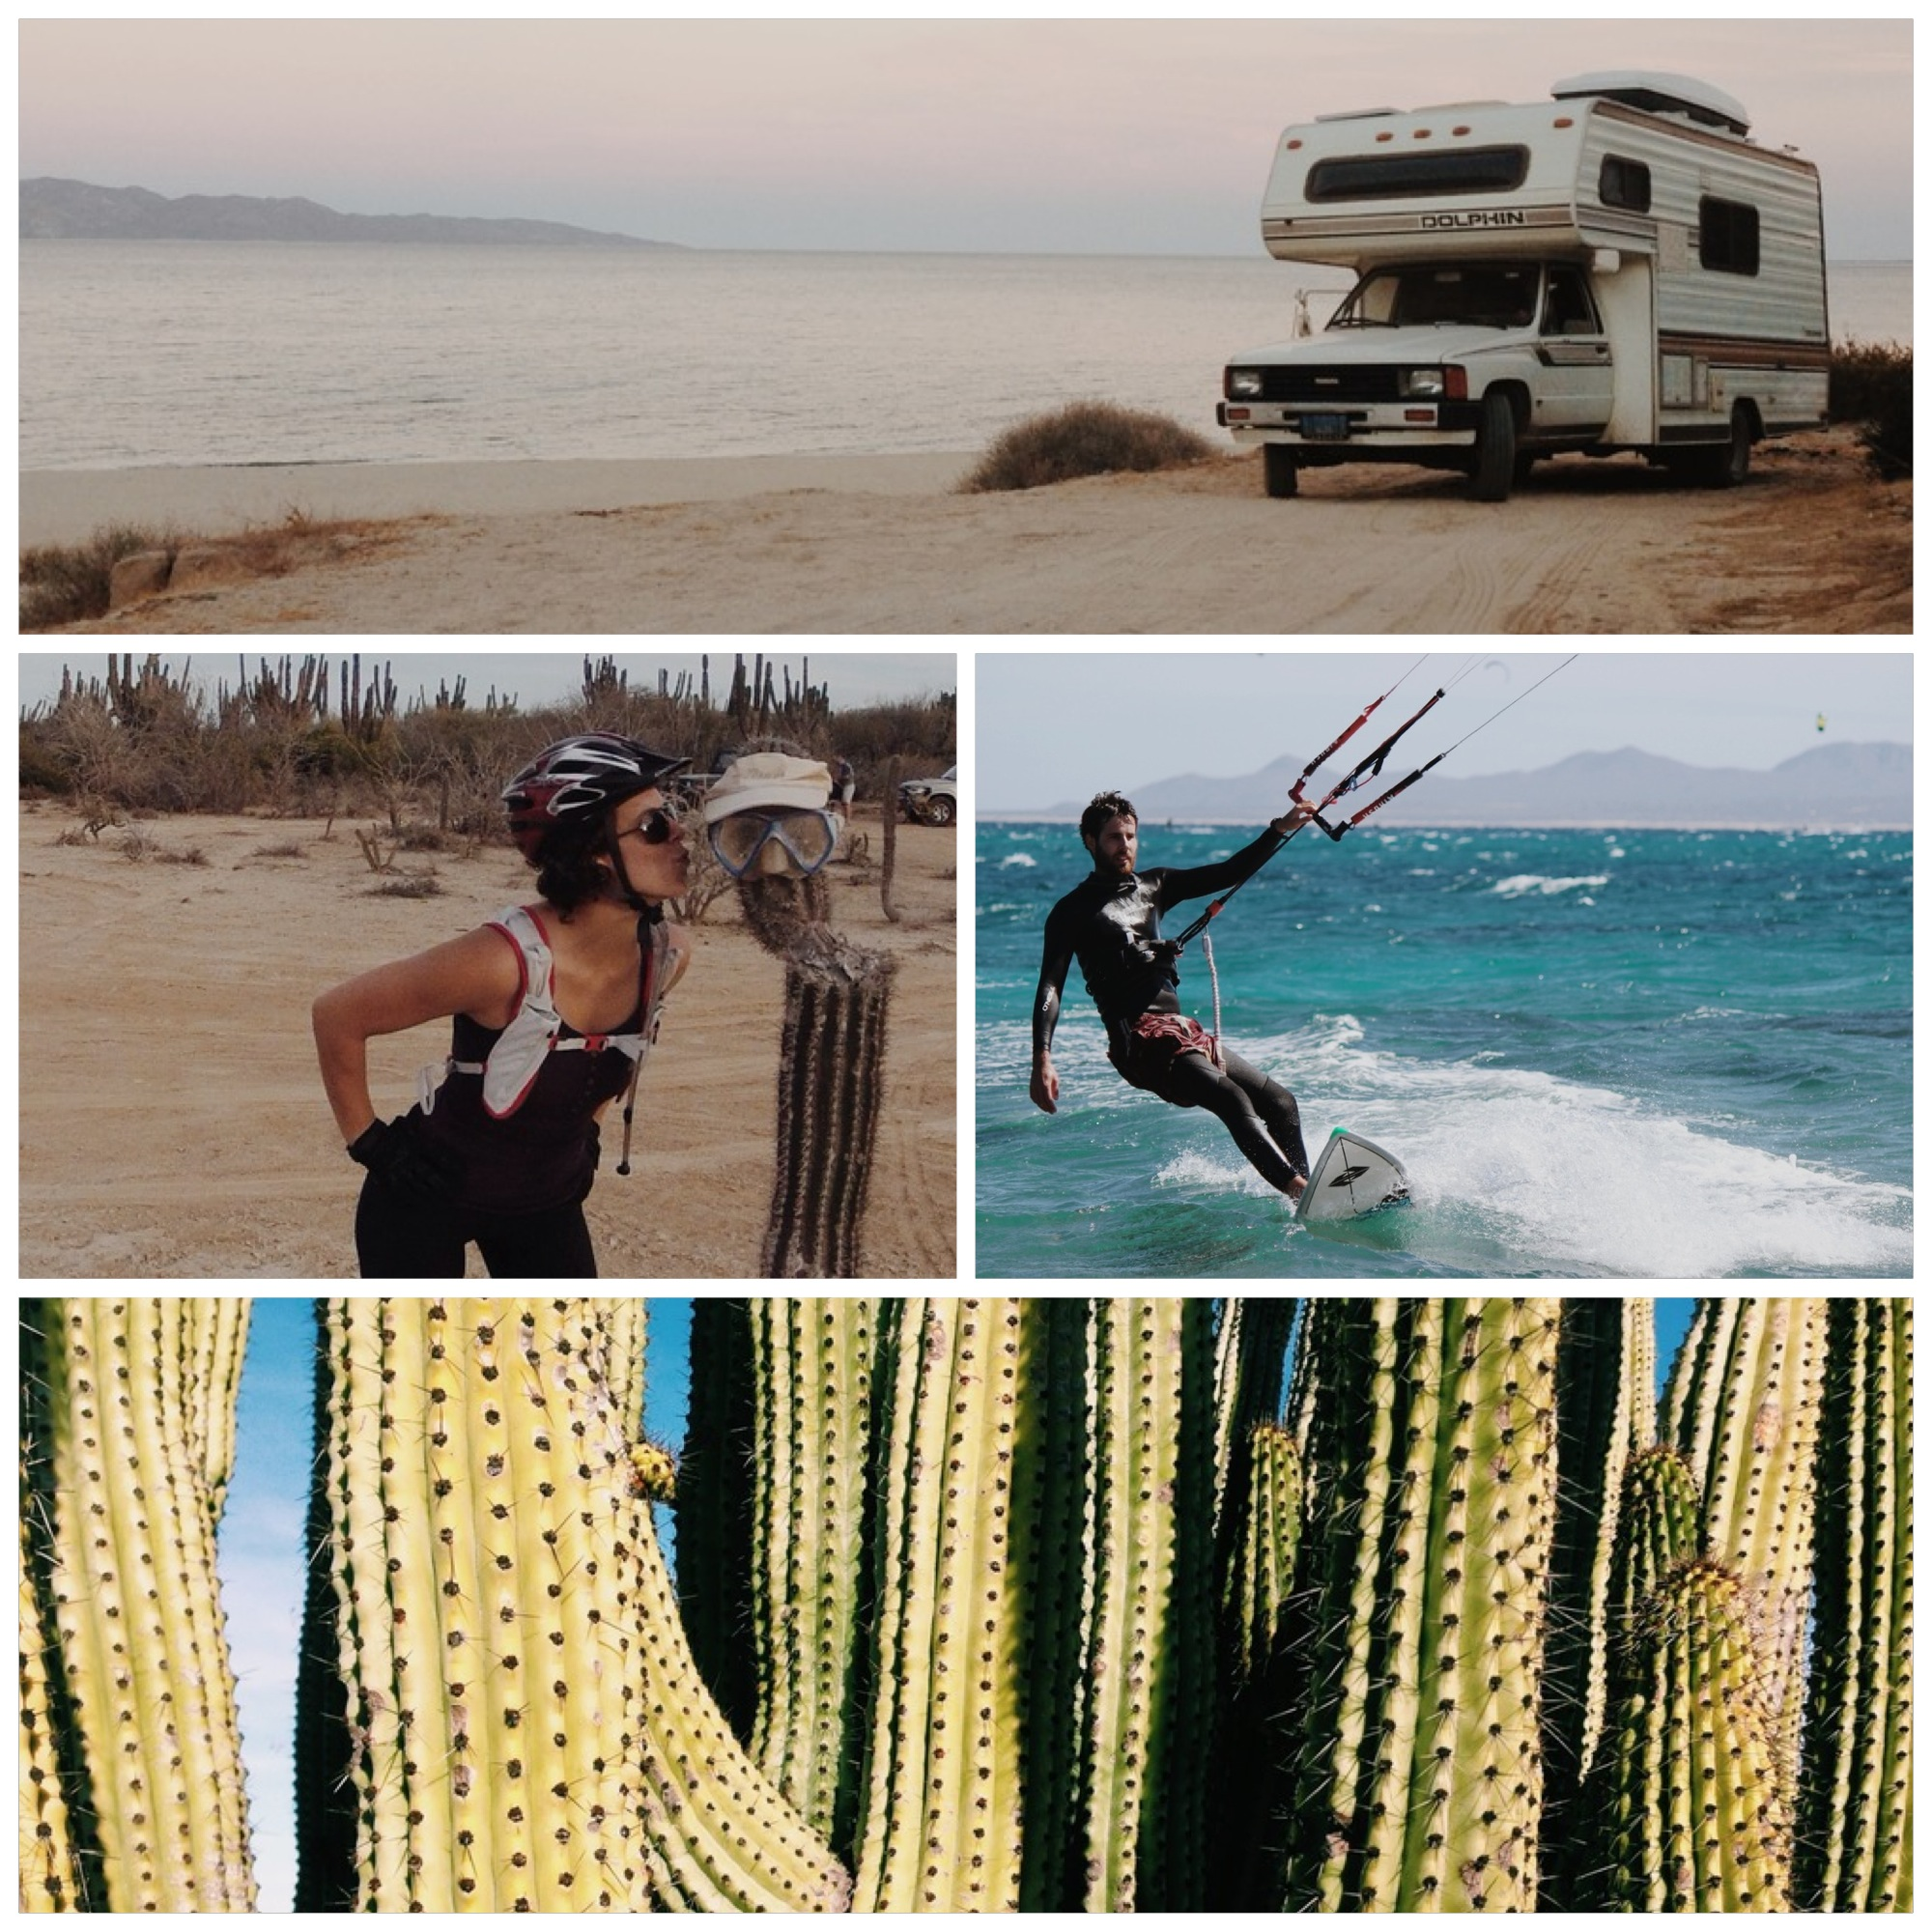 """The Dolphin camped out near """"Rasta Beach"""". Smooching and mountain biking don't mix? Cameron shredding and some awesome cacti."""